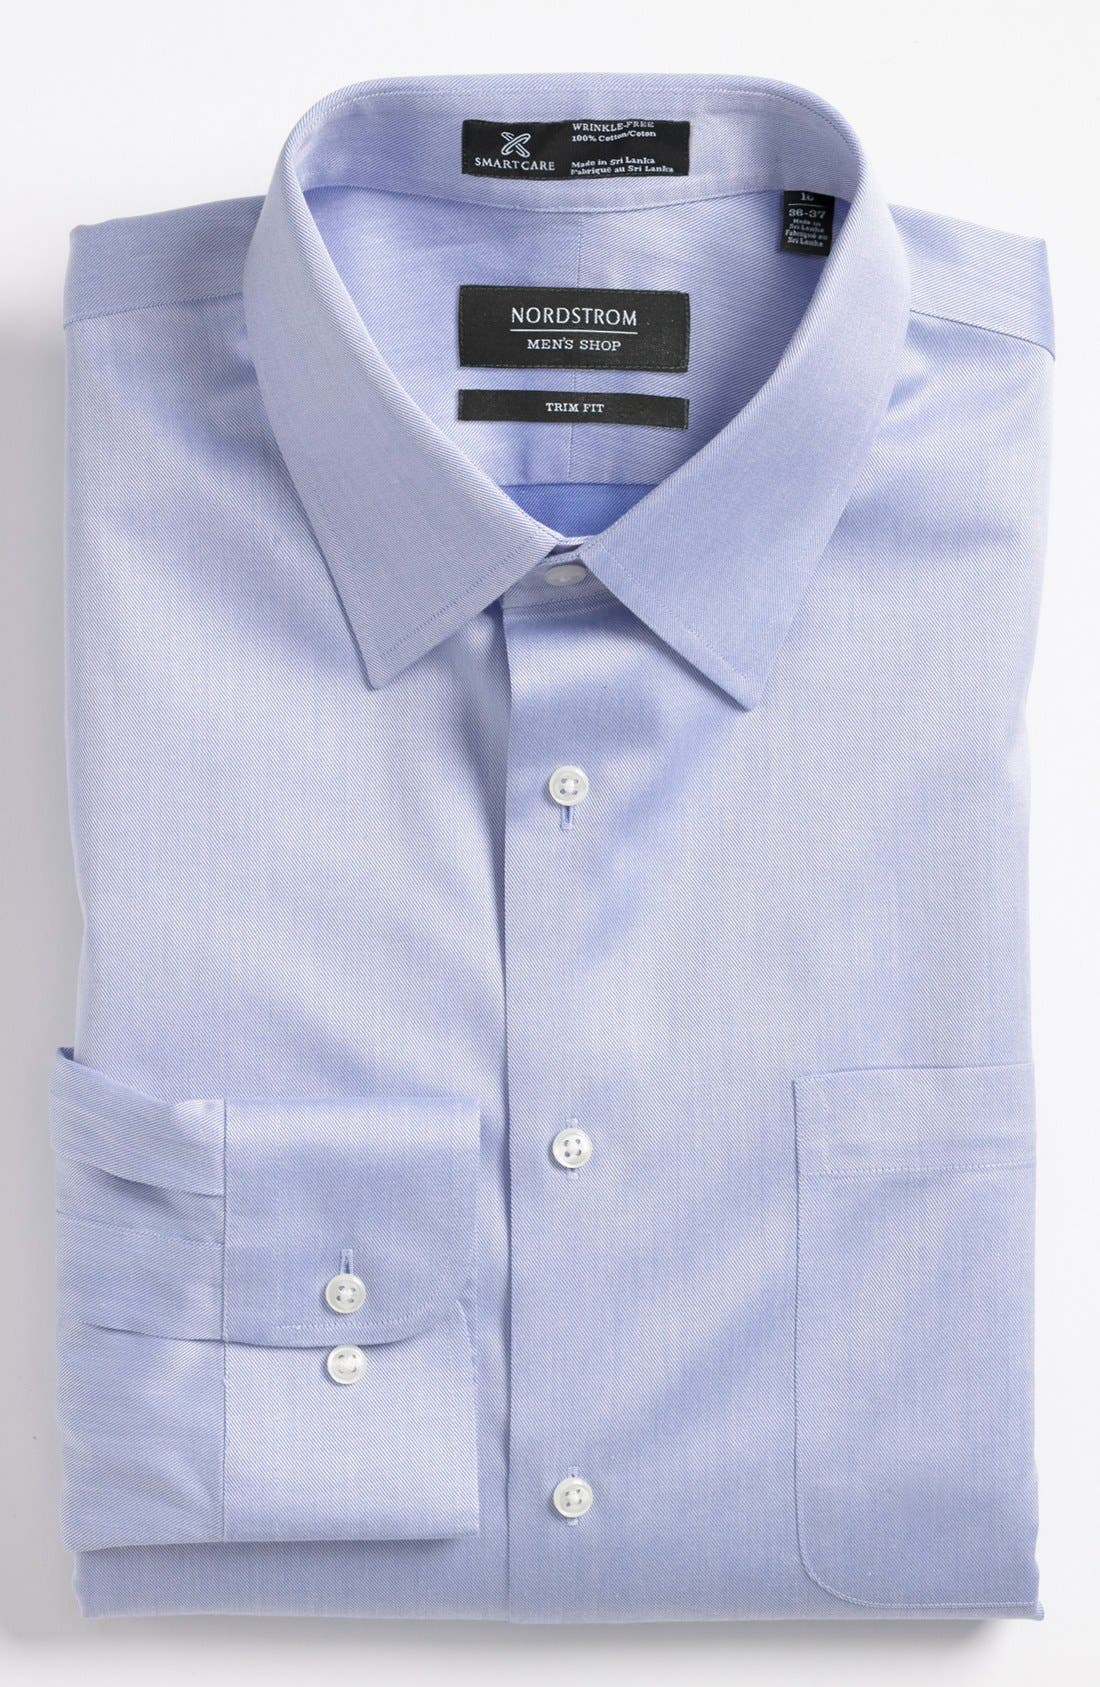 Main Image - Nordstrom Men's Shop Smartcare™ Trim Fit Twill Dress Shirt